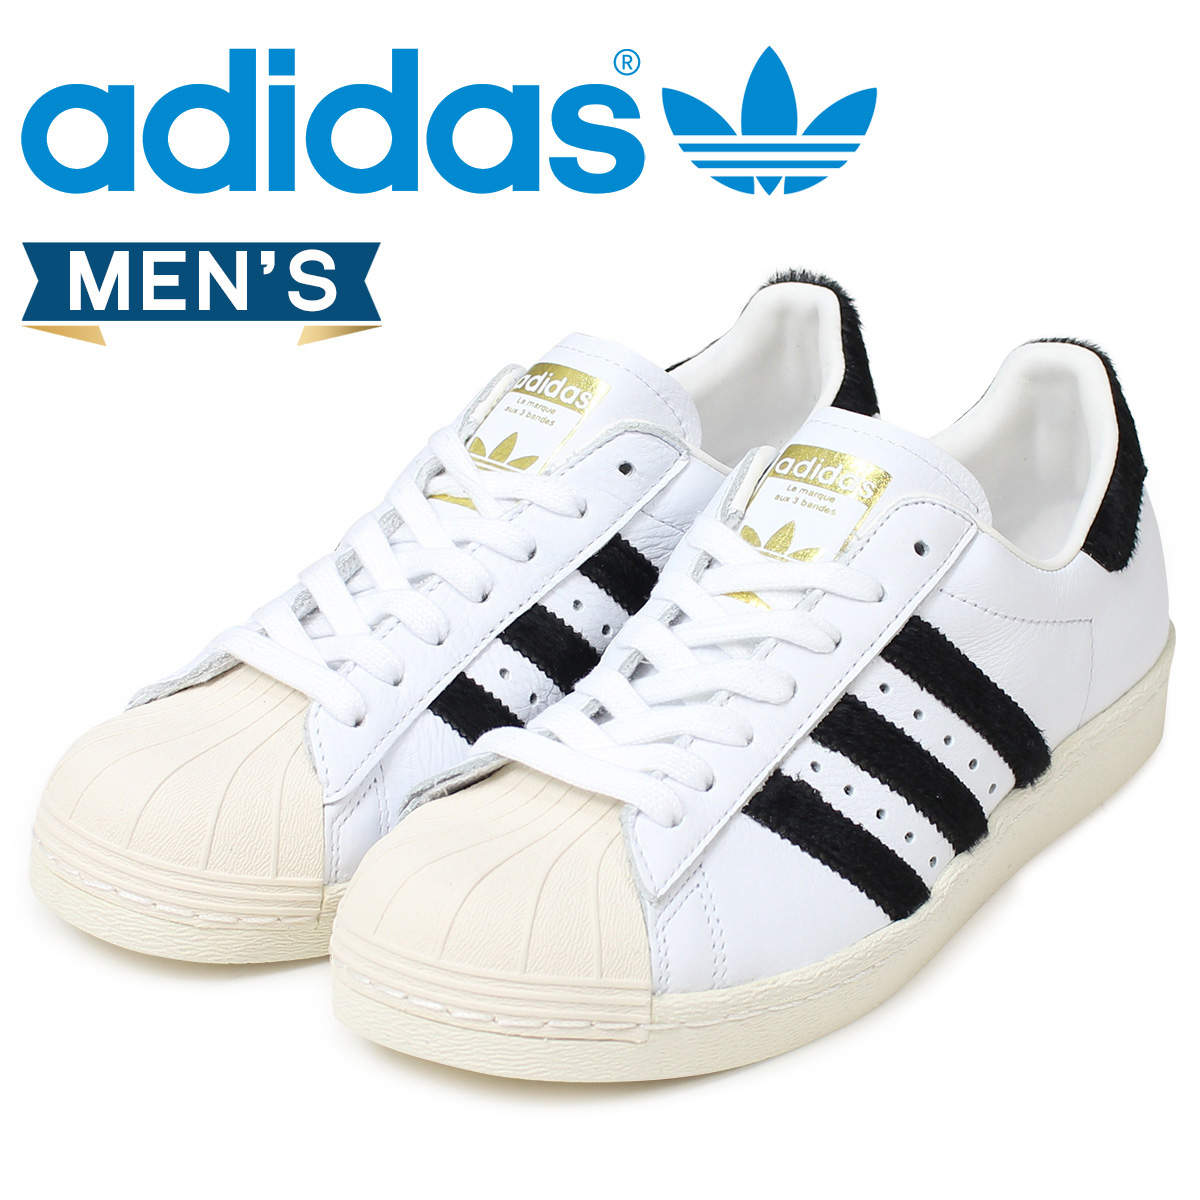 Adidas superstar Lady's men sneakers adidas